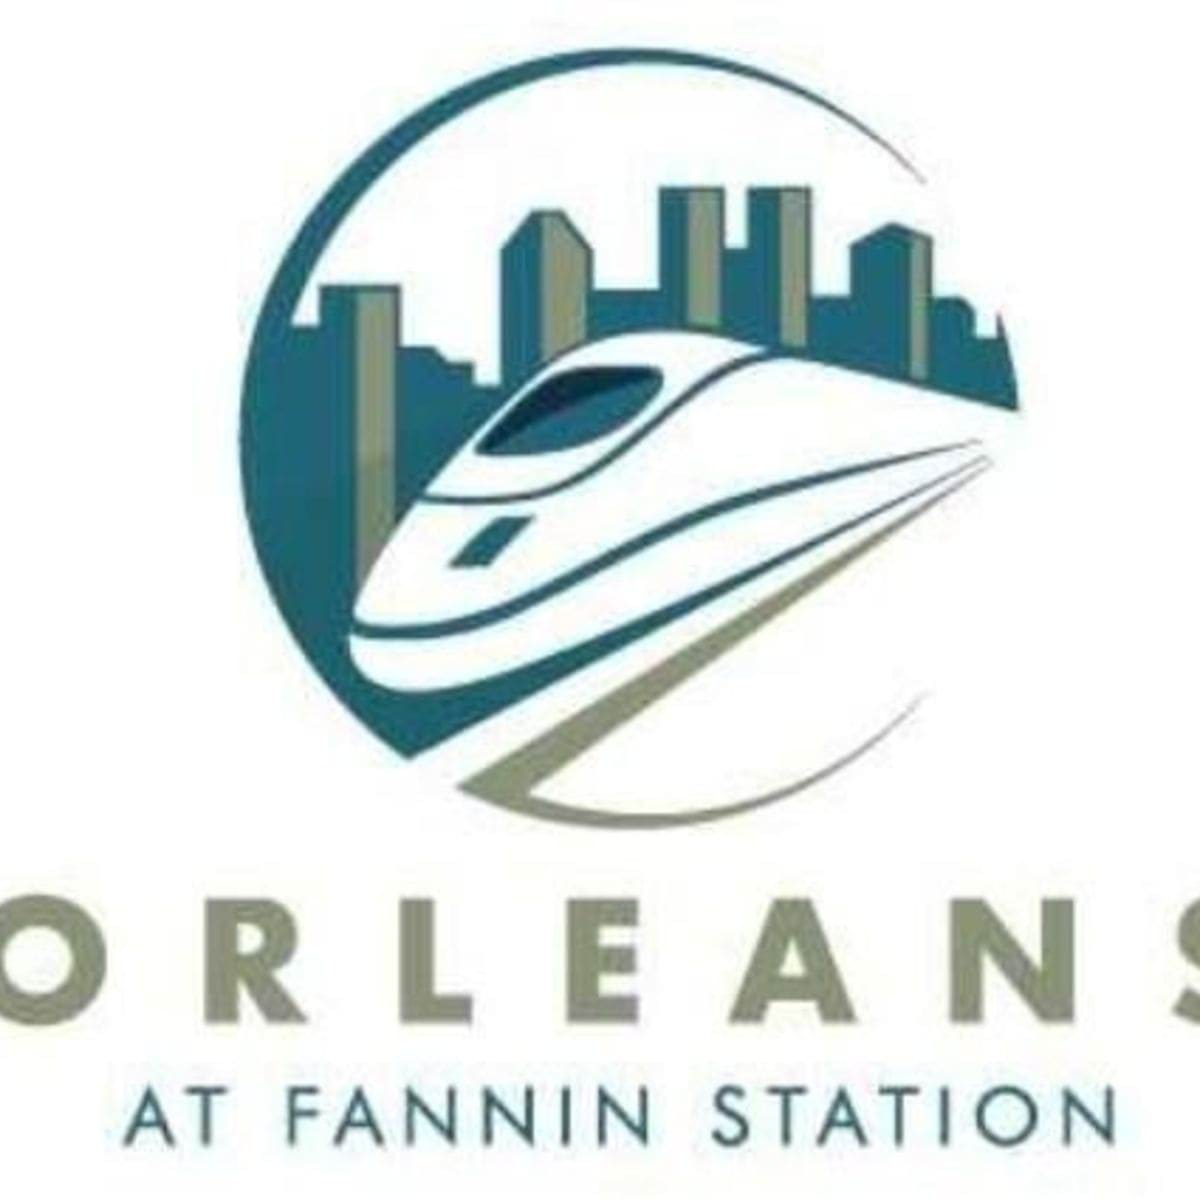 For Rent Com Houston: Contact Us Orleans At Fannin Station